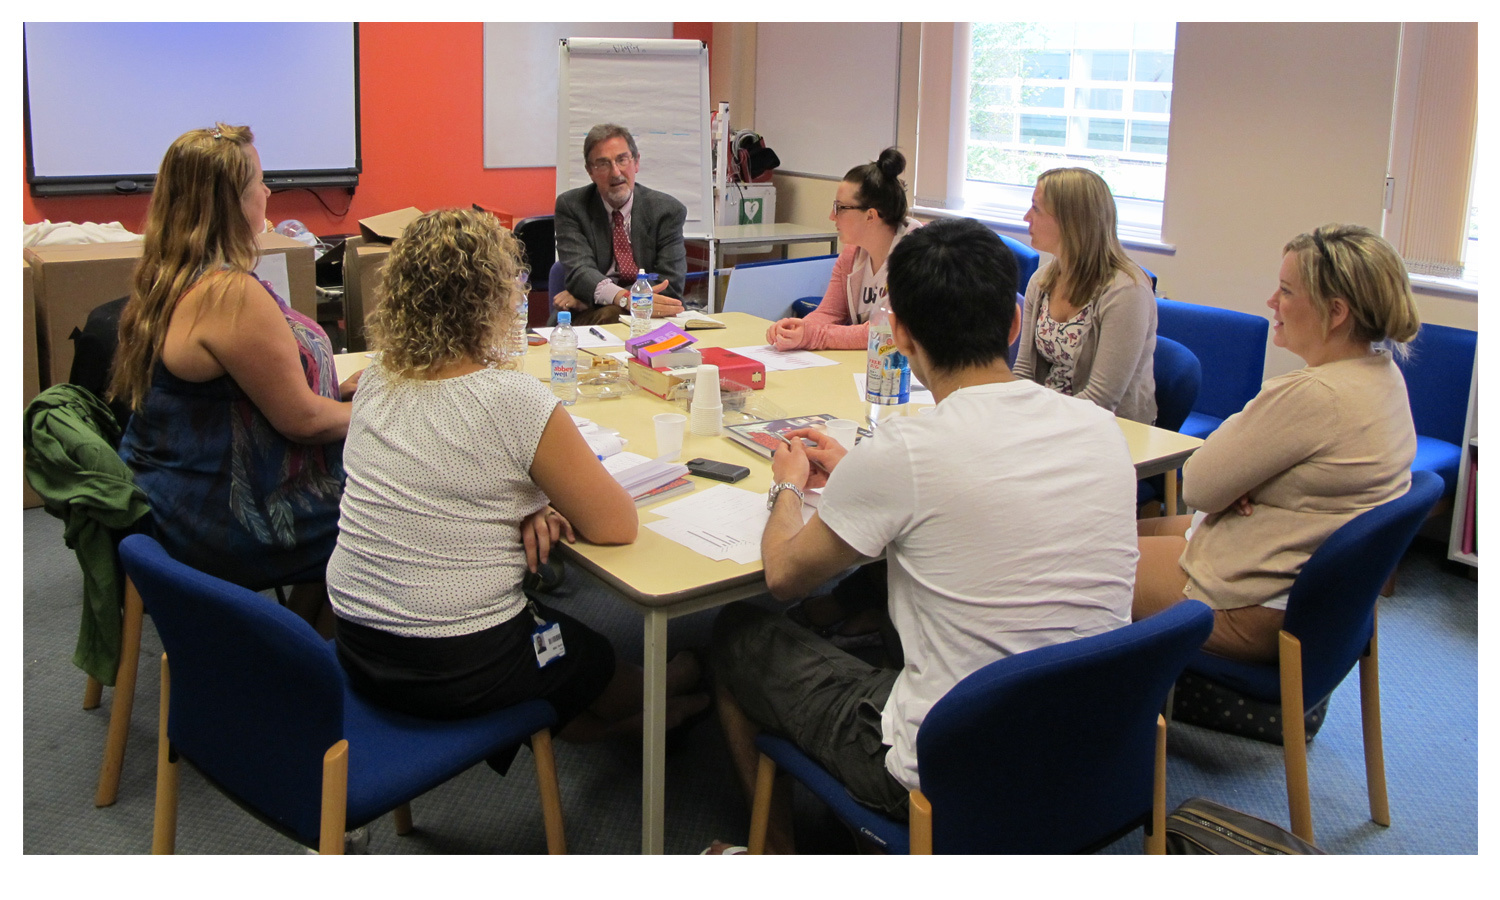 Support session held with a small group of A&E staff © Pearson Lloyd